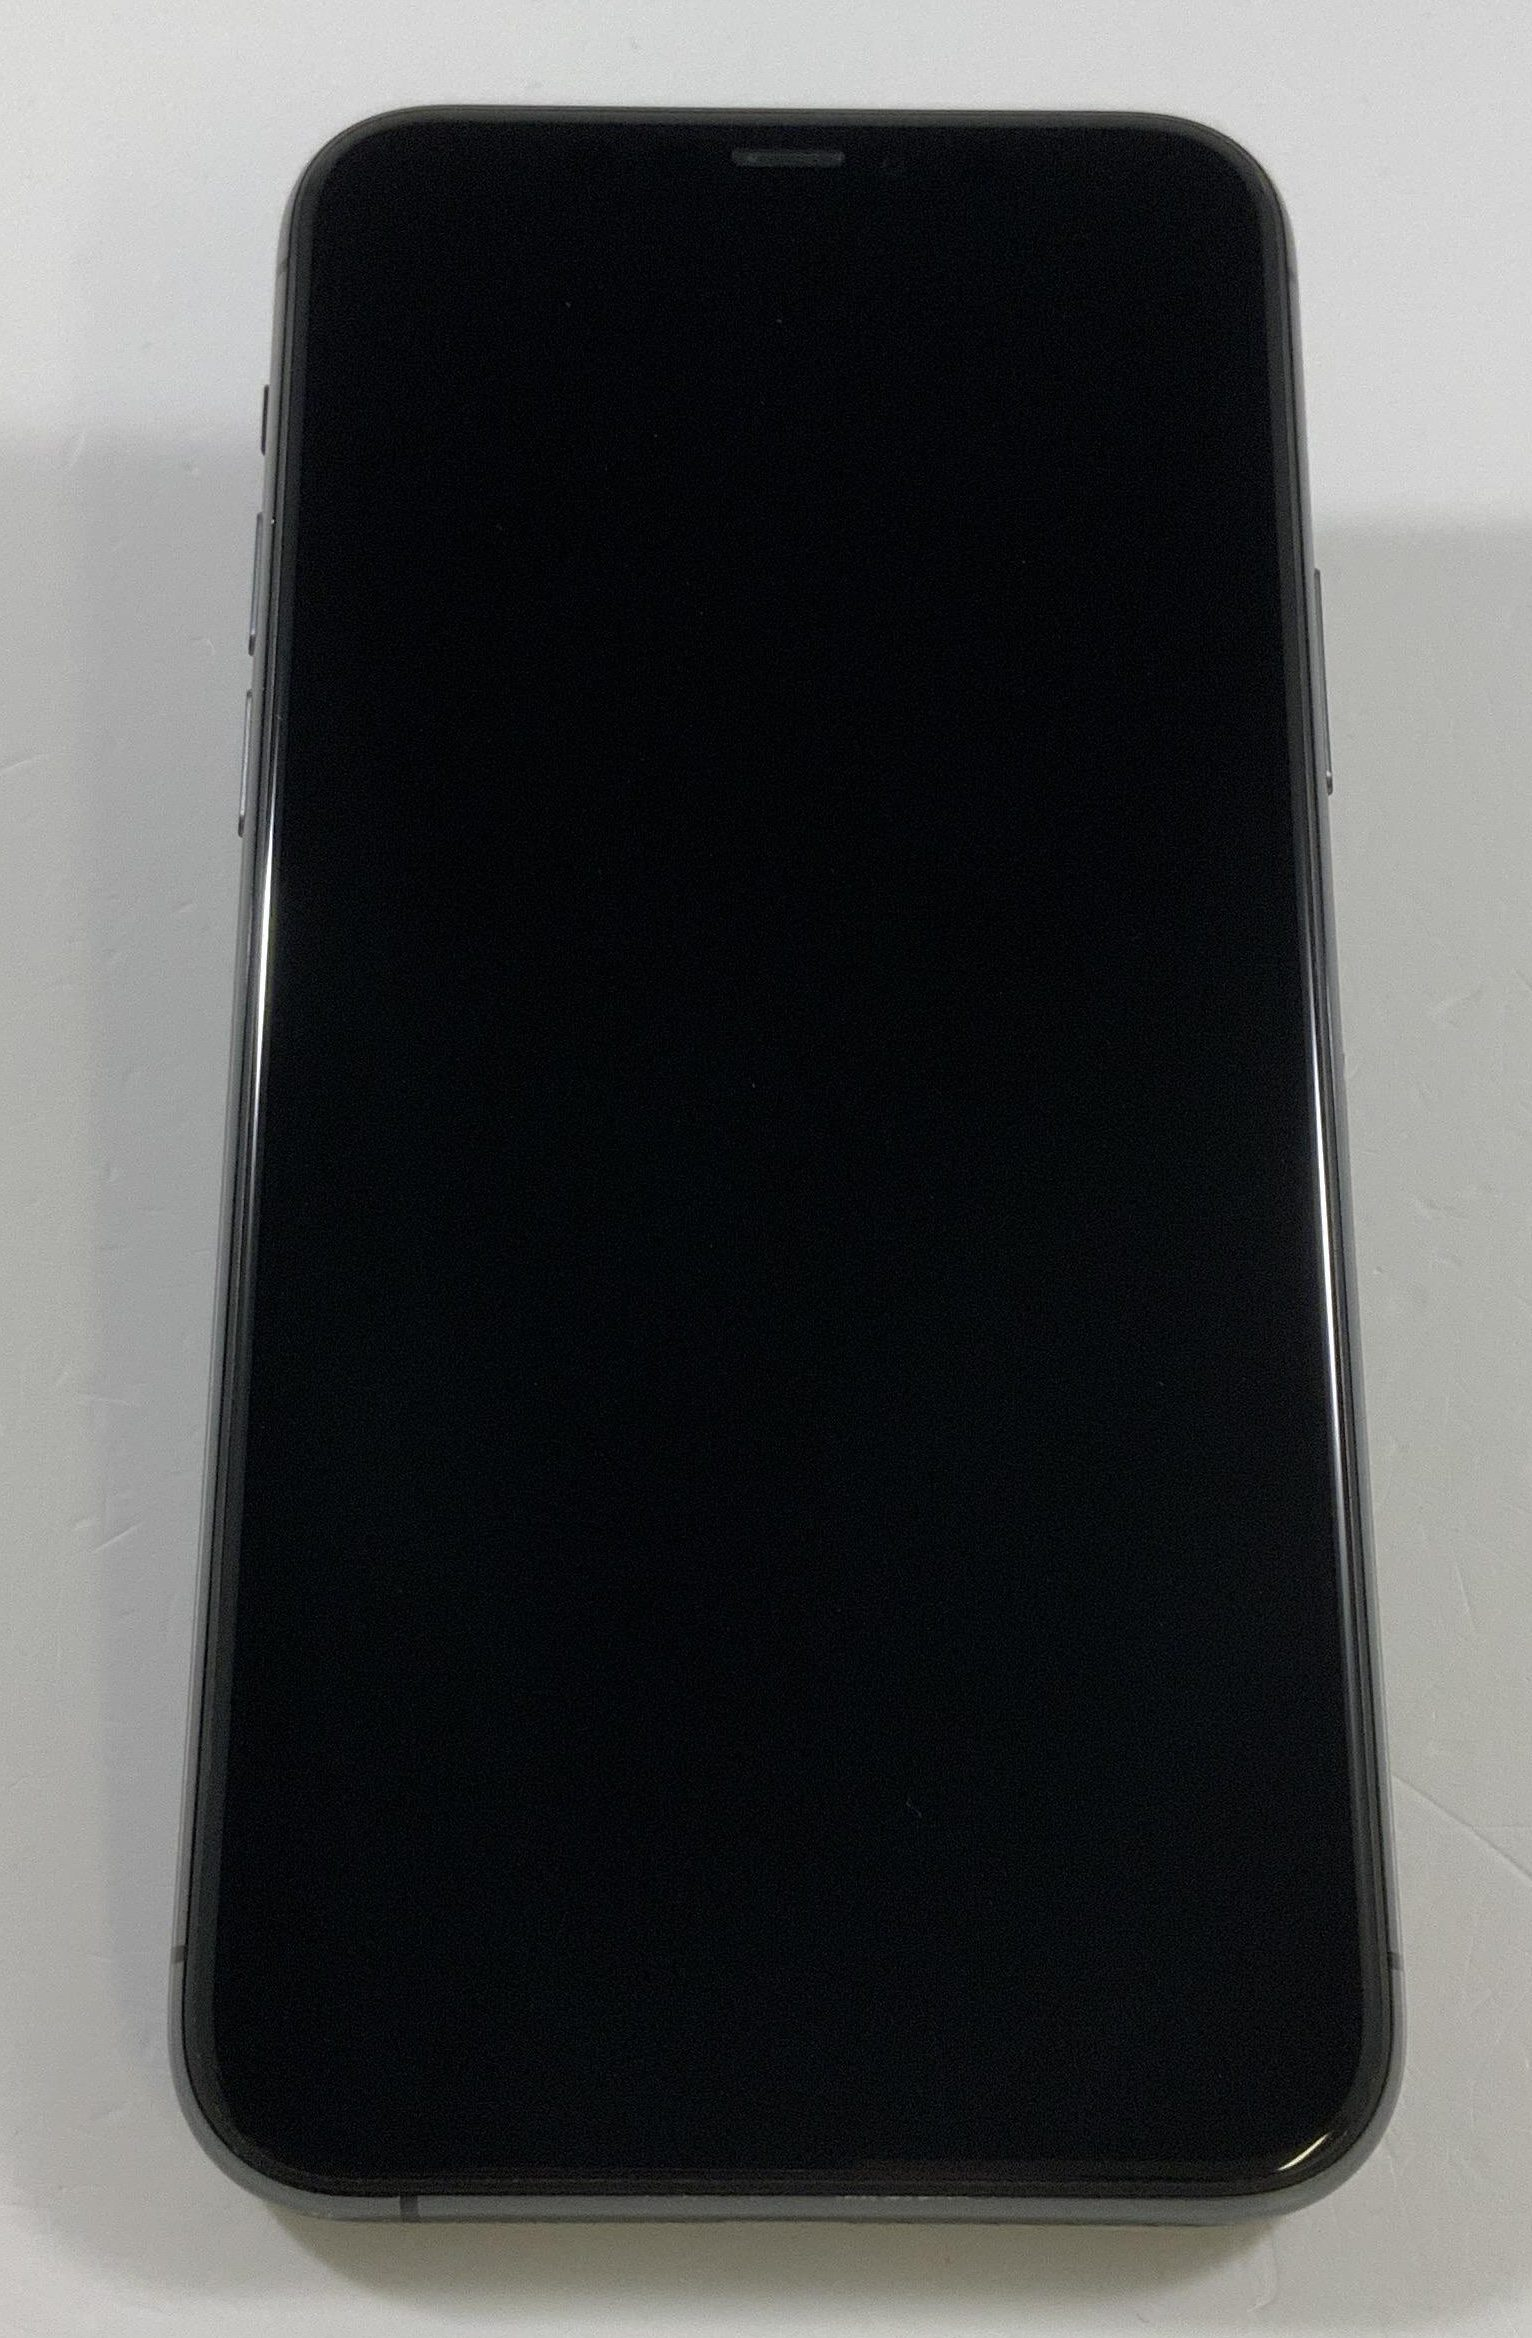 iPhone 11 Pro 64GB, 64GB, Space Gray, immagine 1